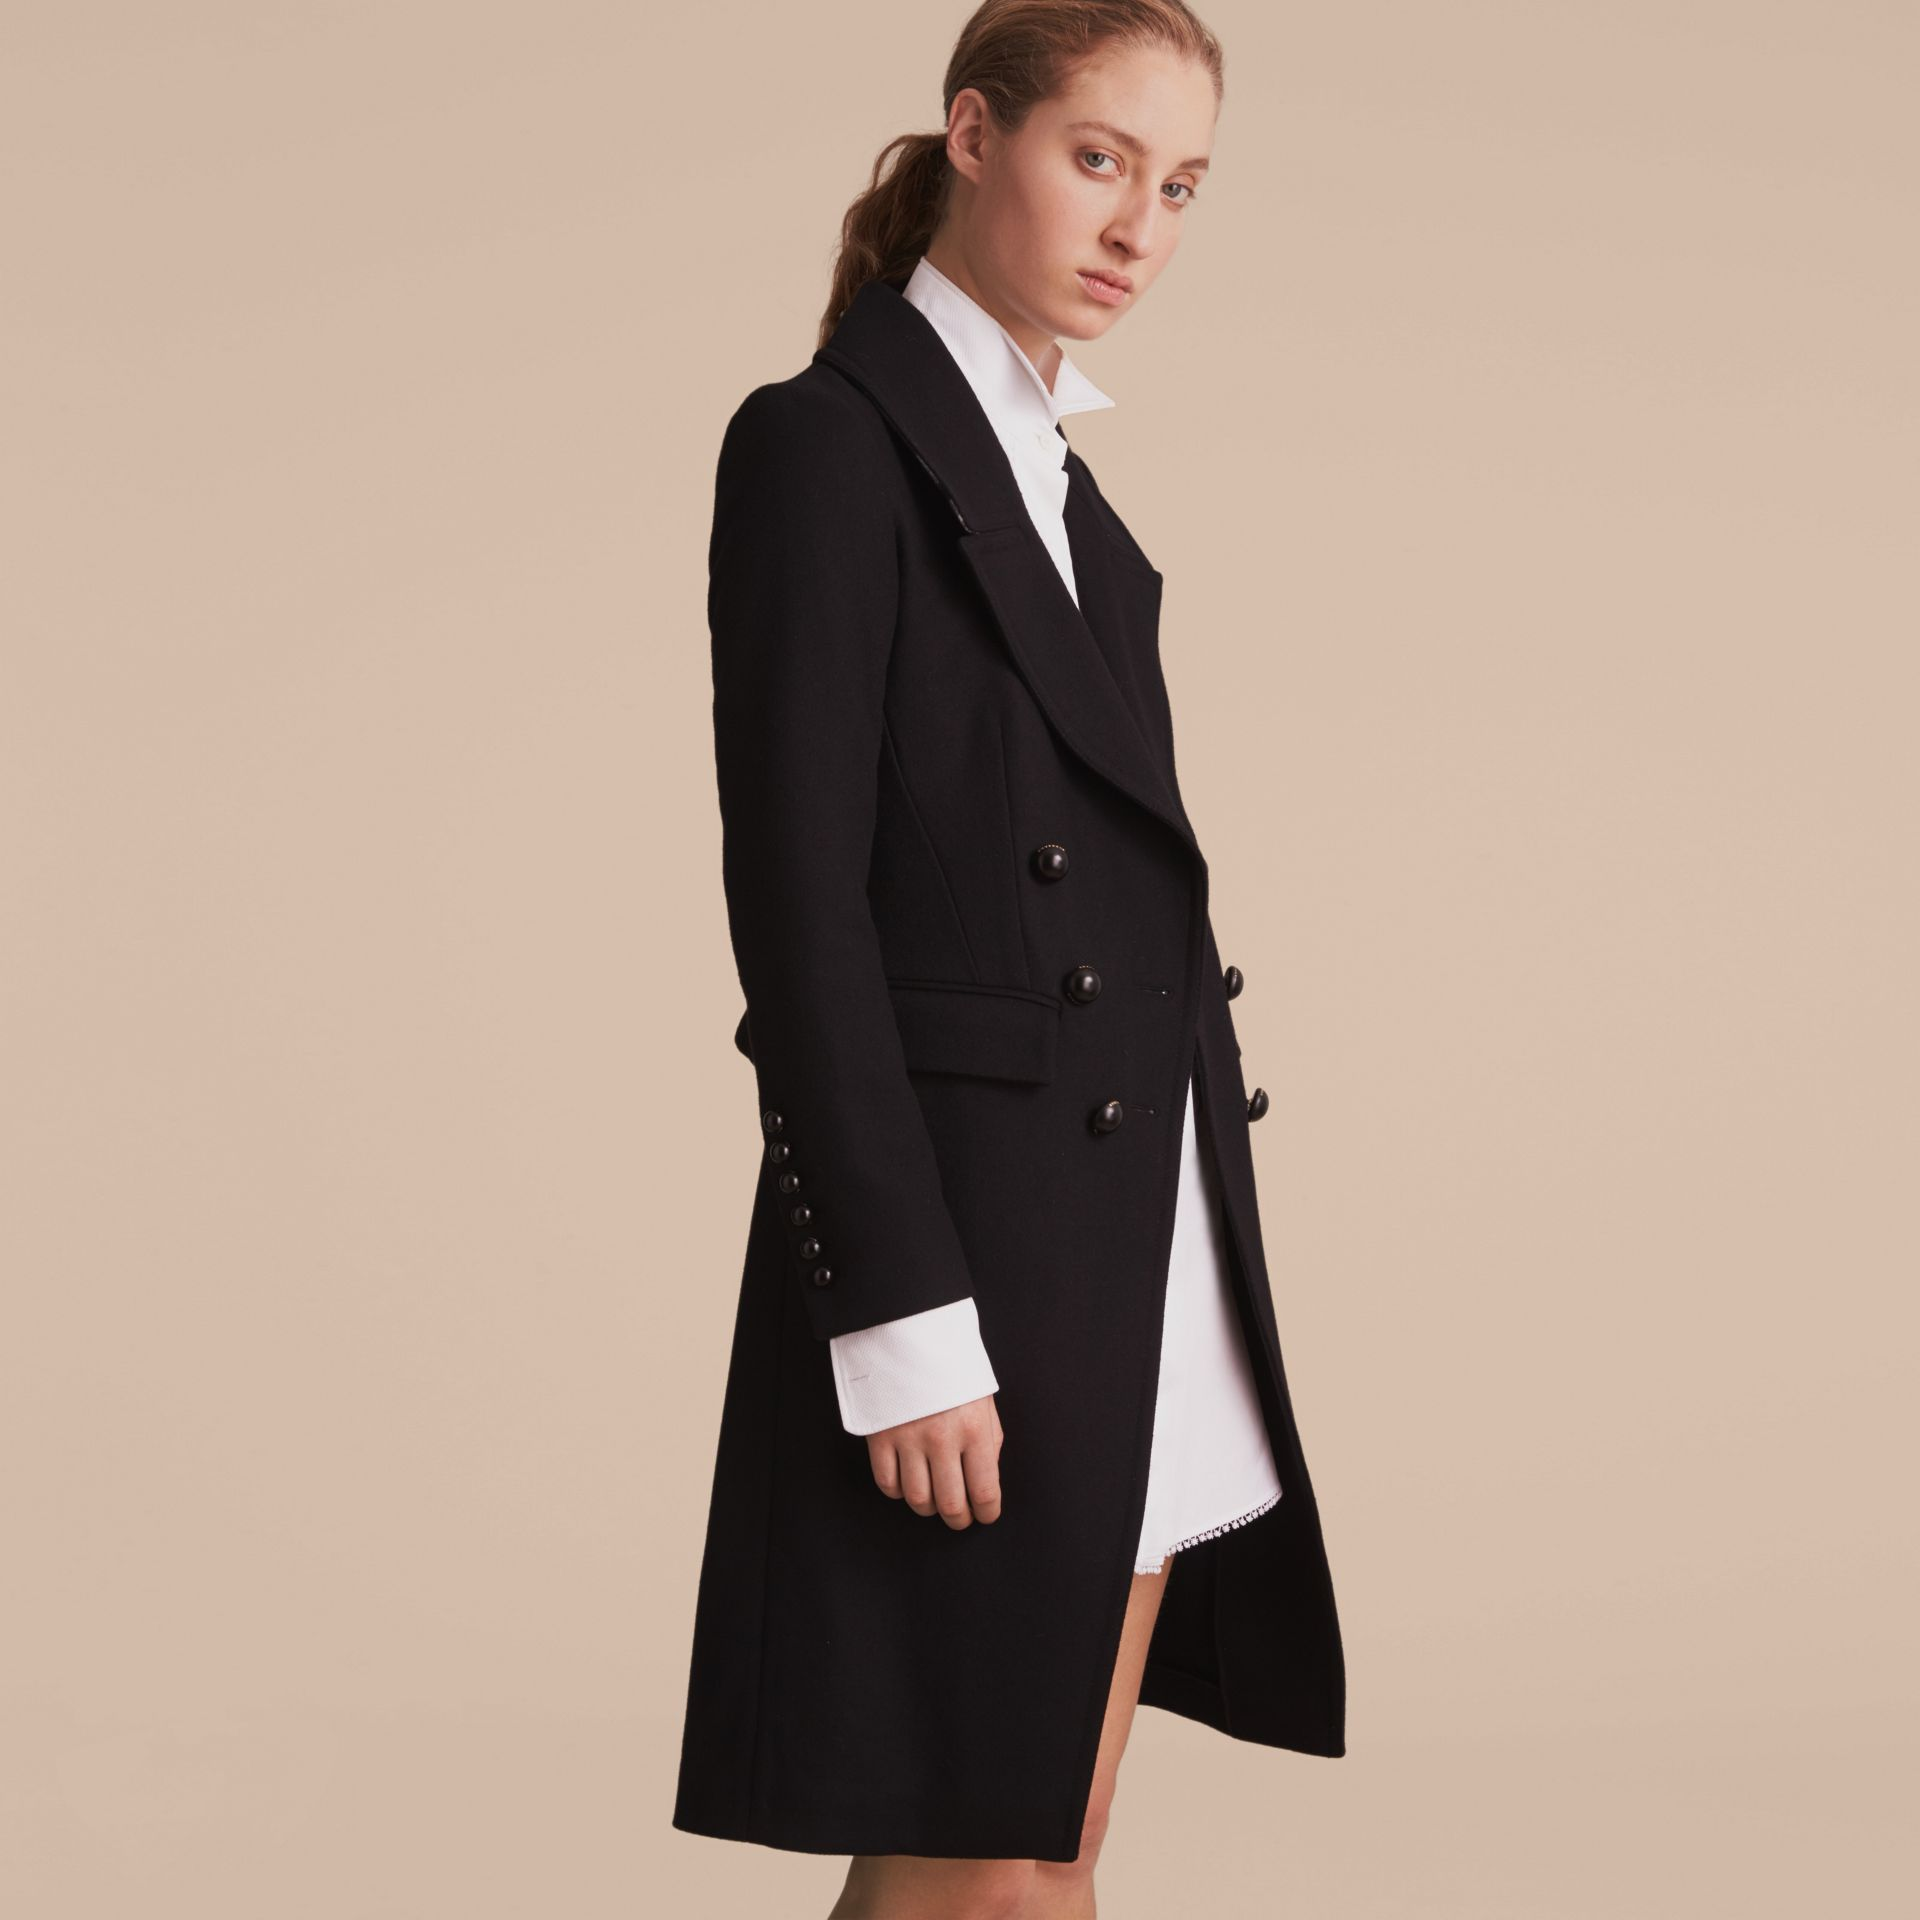 Wool Blend Double-breasted Coat in Black - Women | Burberry Singapore - gallery image 7